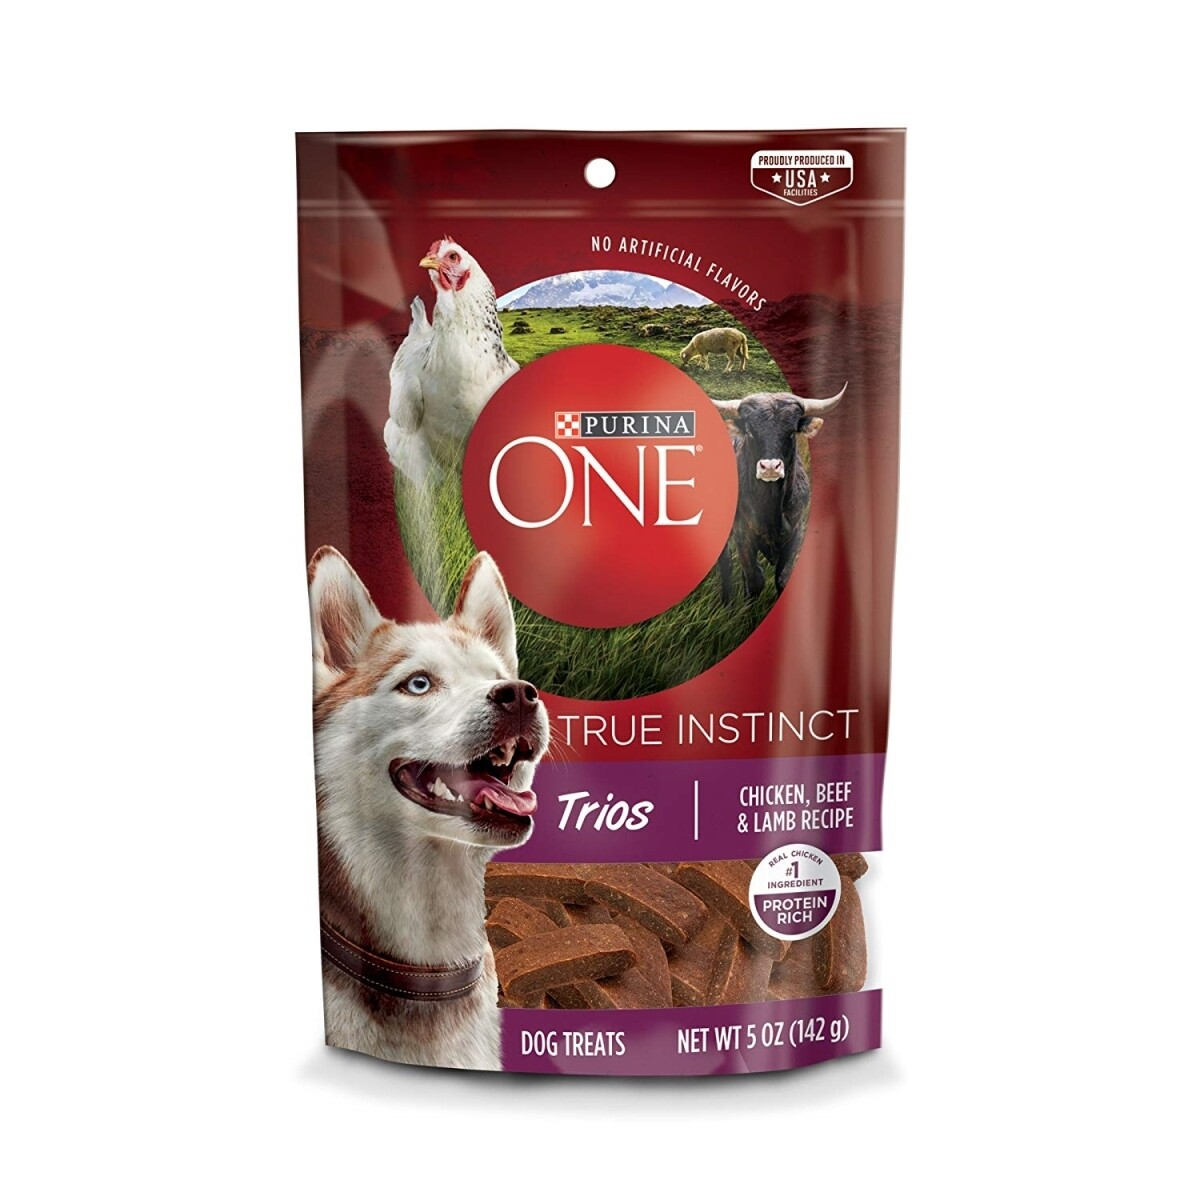 Purina ONE Dog Treats, True Instinct Trios Chicken, Beef & Lamb Recipe - 5 oz. (2/19) (T.F2)